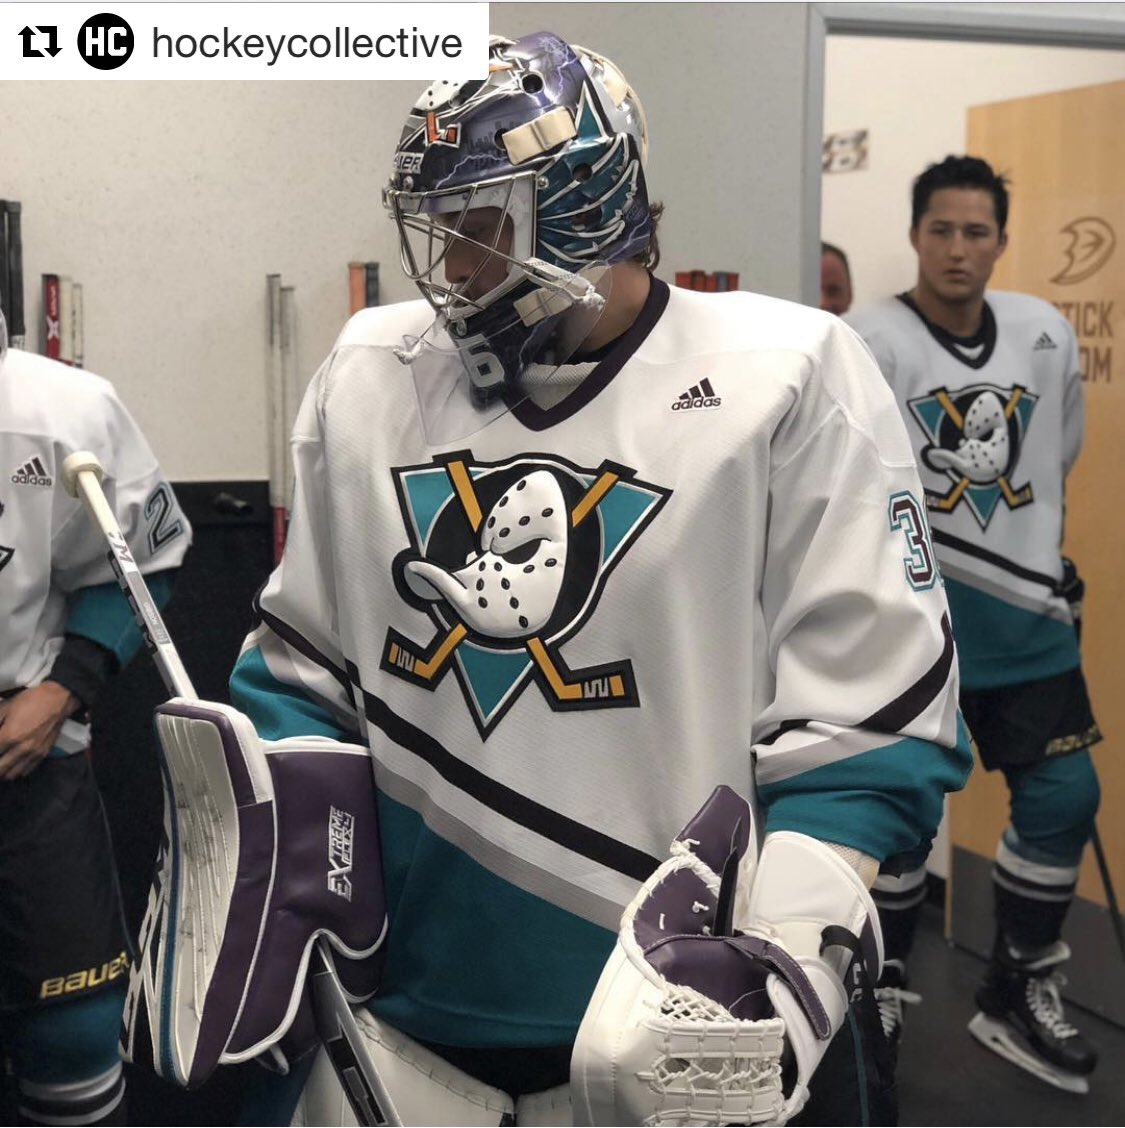 a94056f51af The Ducks wore 1993 throwback jerseys during pregame warmups last night. As  you can see, the jerseys had the Adidas logo on the front (from Nick  Terranova).